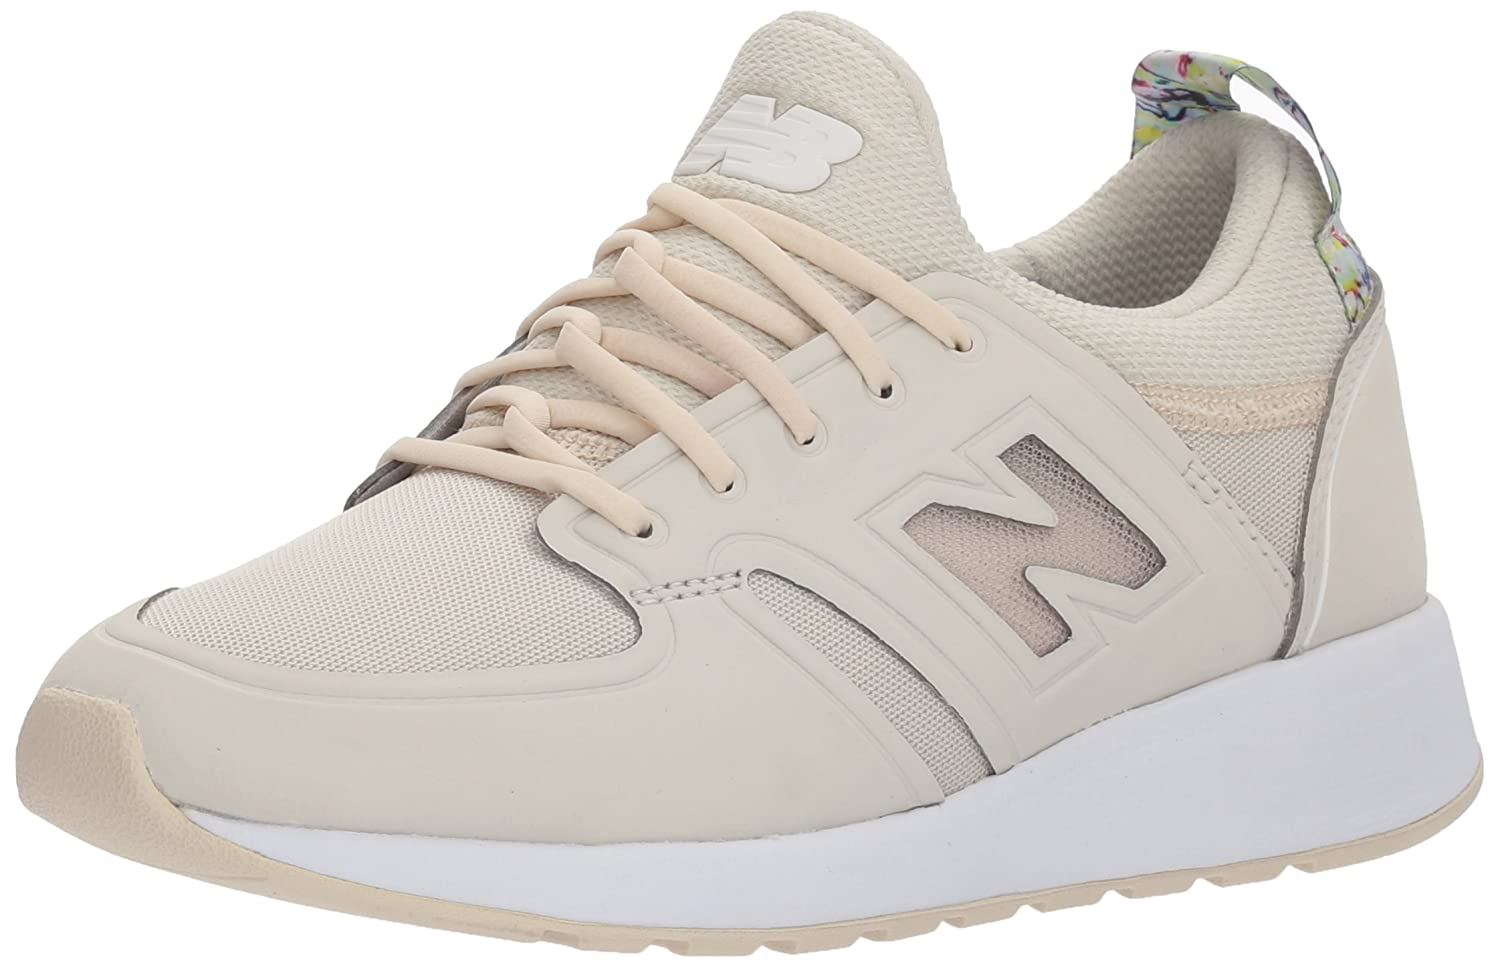 New Balance Women's 420 Sneaker B06XX8XXHJ 55 B US|Moonbeam/Solar Pink